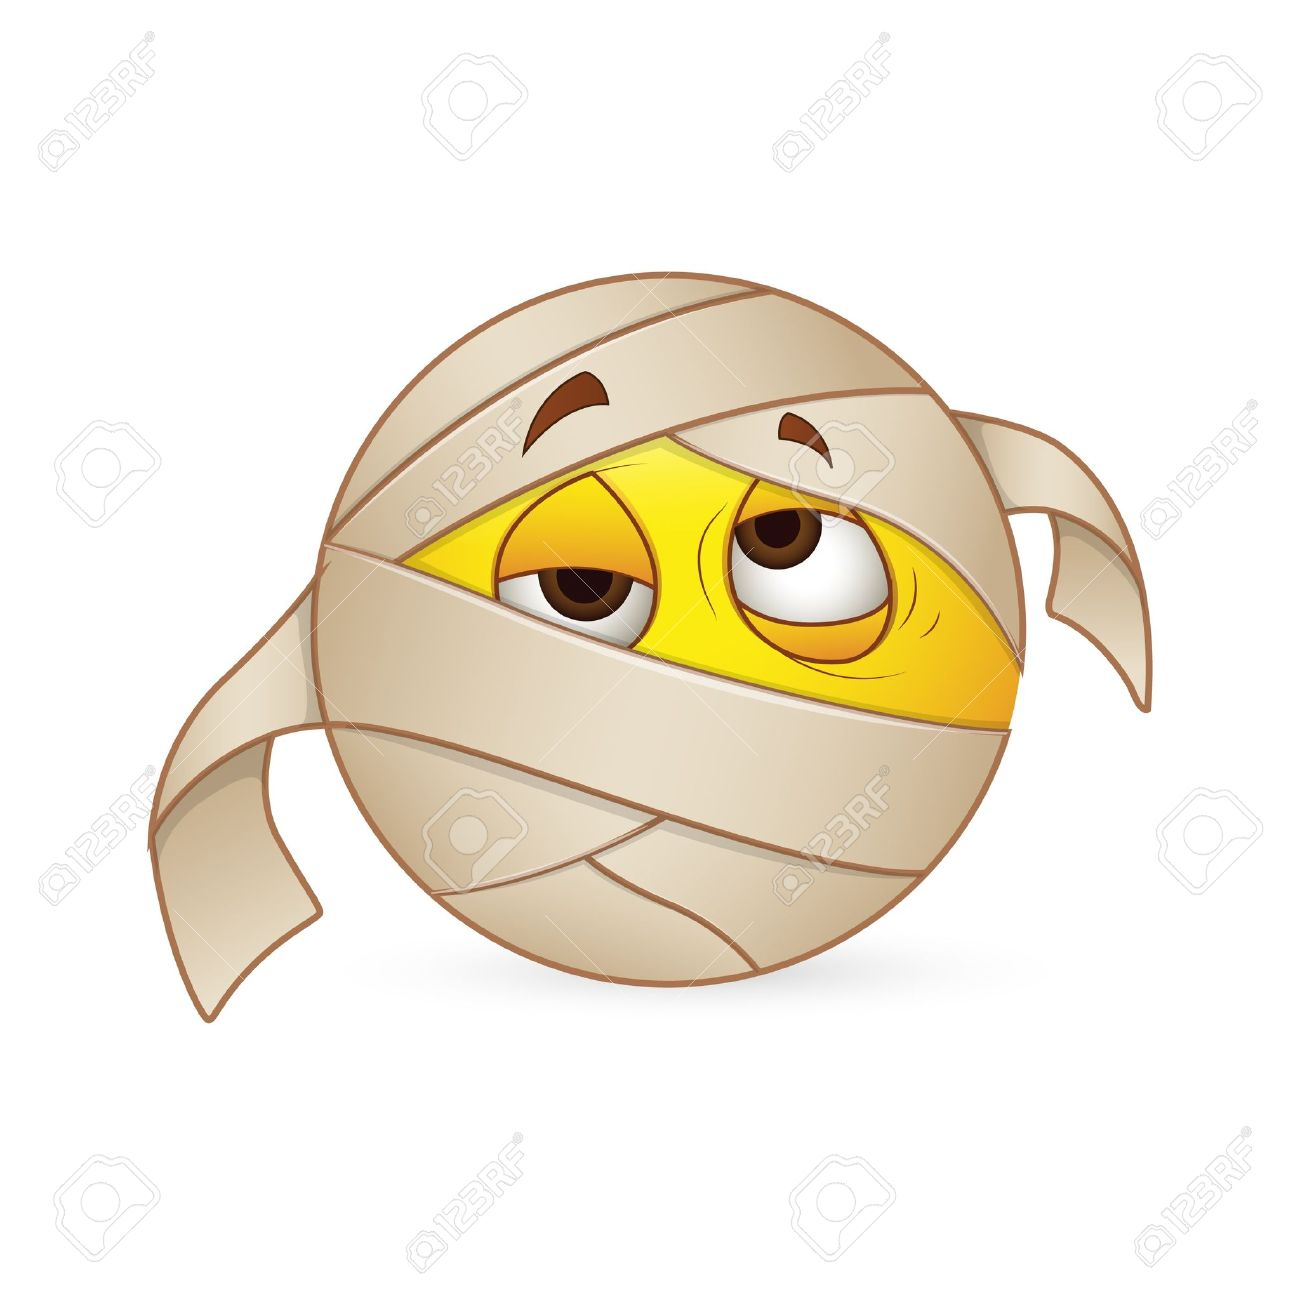 Smiley emoticons face sick expression royalty free cliparts vectors smiley emoticons face sick expression stock vector 15808642 thecheapjerseys Image collections